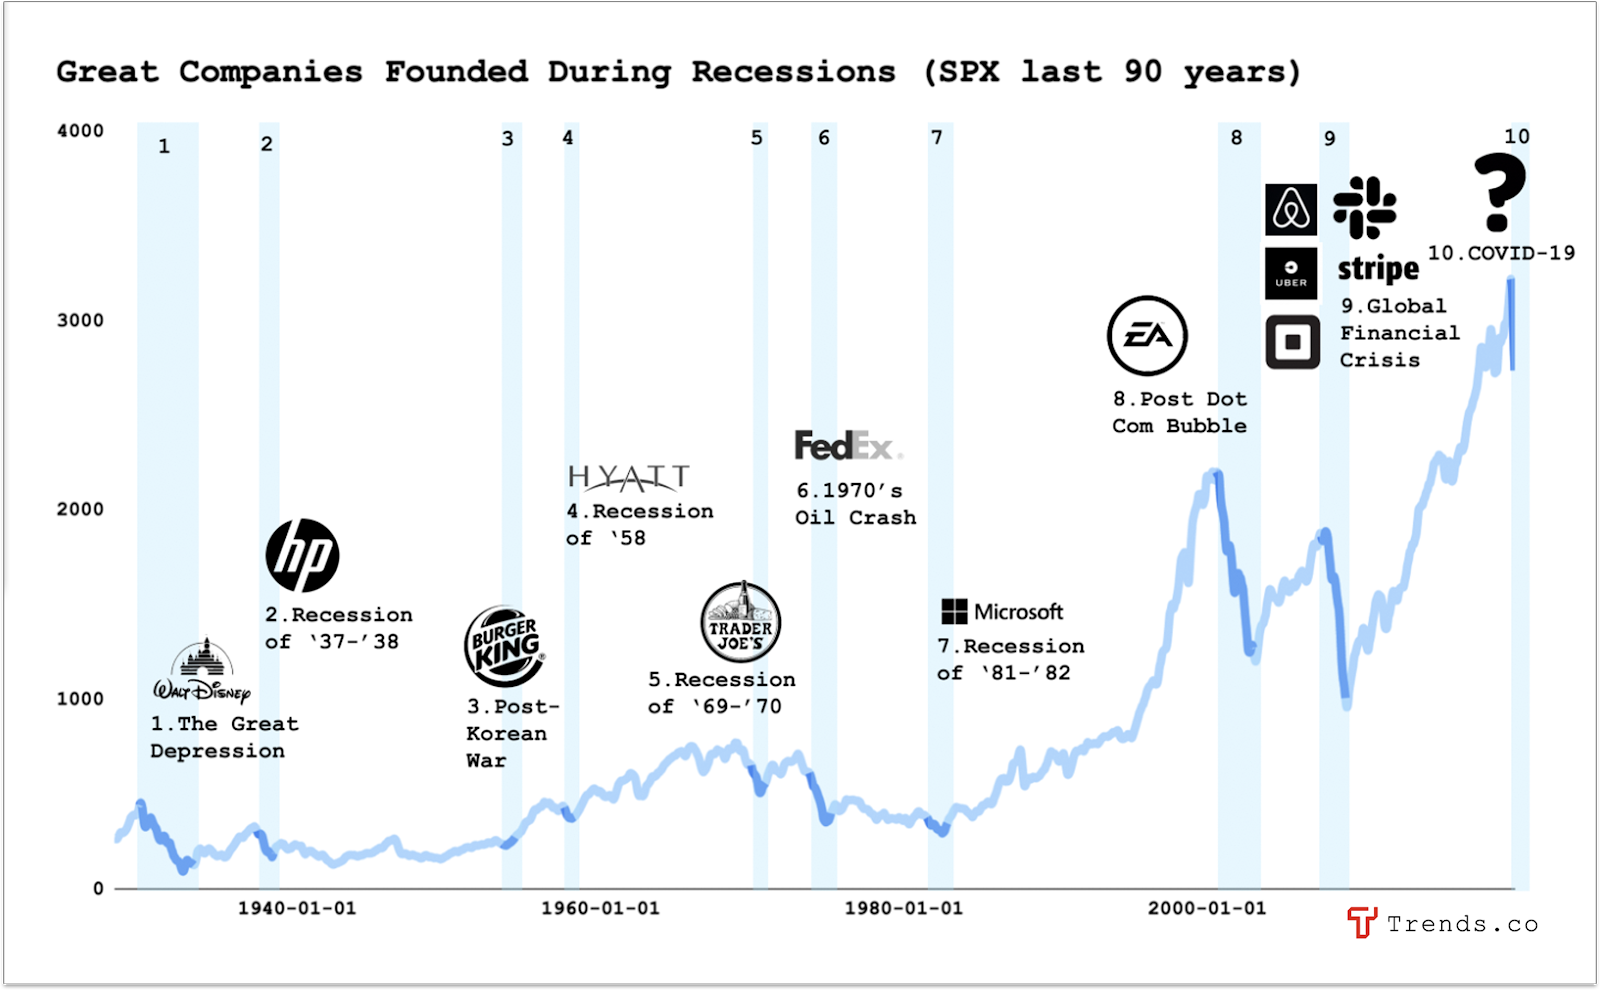 Great companies founded during recessions within the last 90 years.